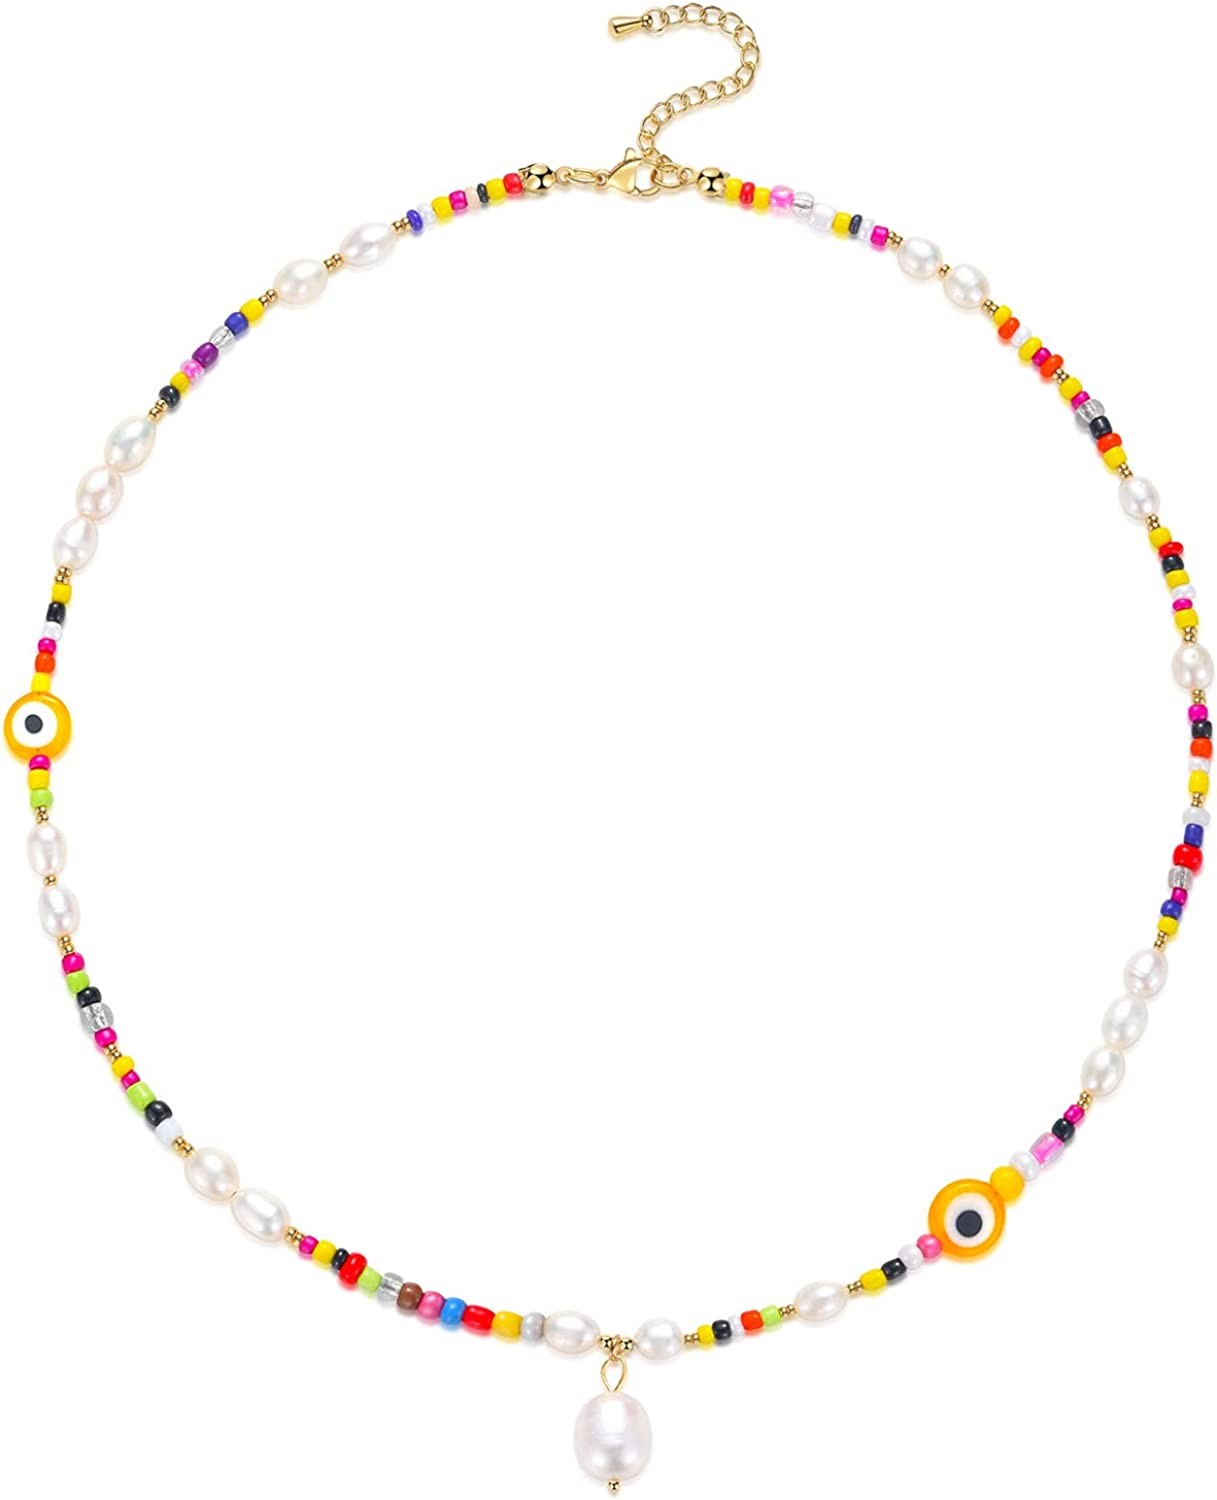 Colorful Boho Bead Pearl Necklace for Girls Women, Trendy Beaded Choker Necklace | Adjustable Summer Beach Necklace Jewelry Gifts for Teens Men